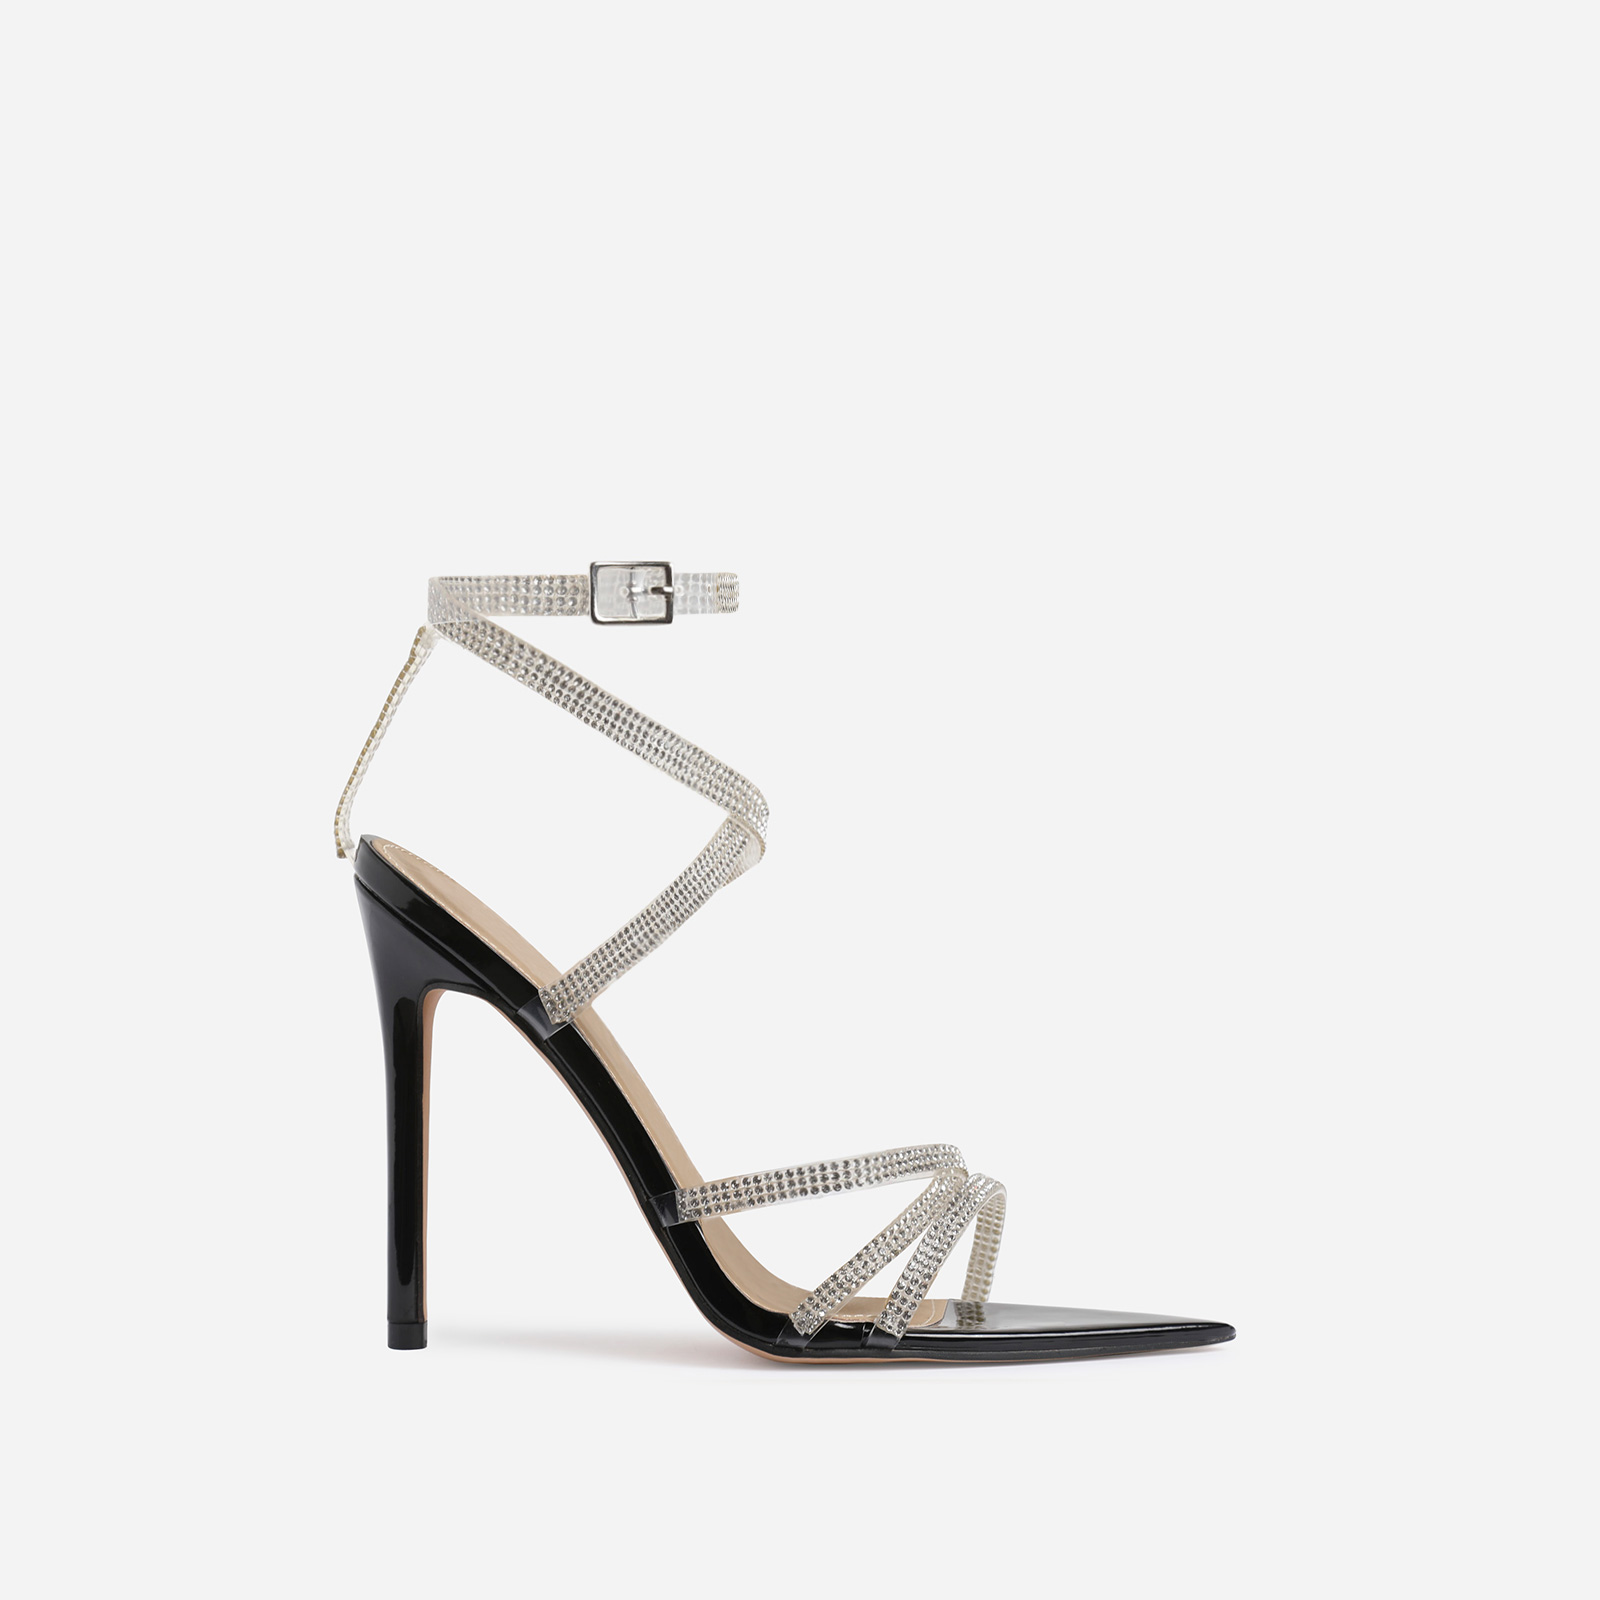 Precious Diamante Detail Pointed Toe Heel In Black Patent